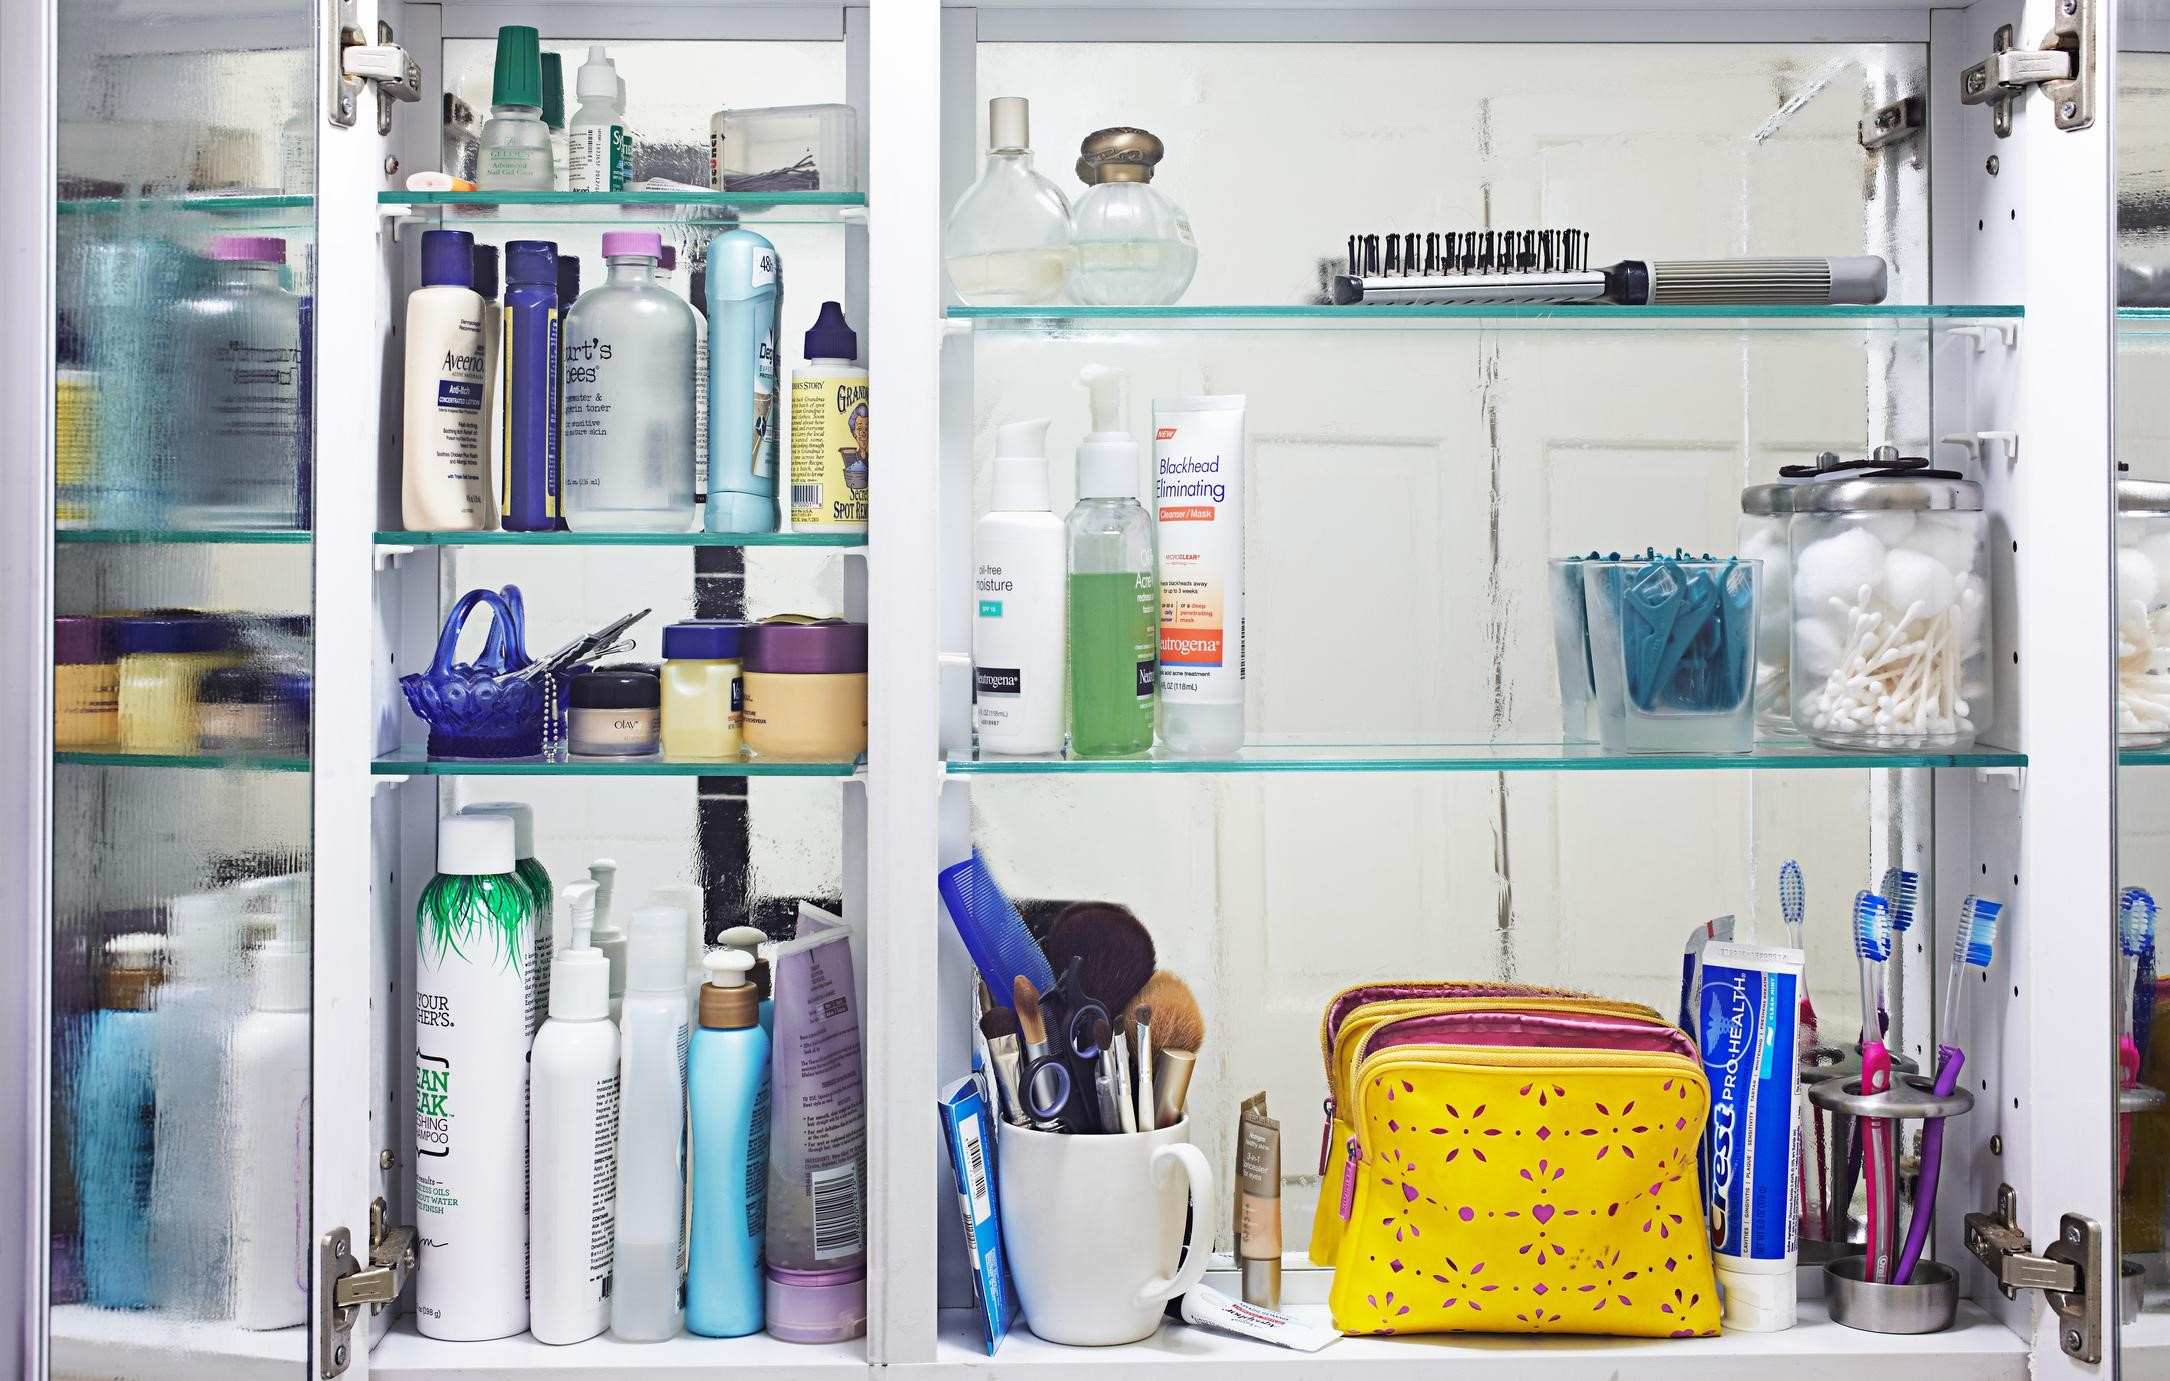 inside of a bathroom cabinet full of products, makeup brushes, toothbrushes and accessories